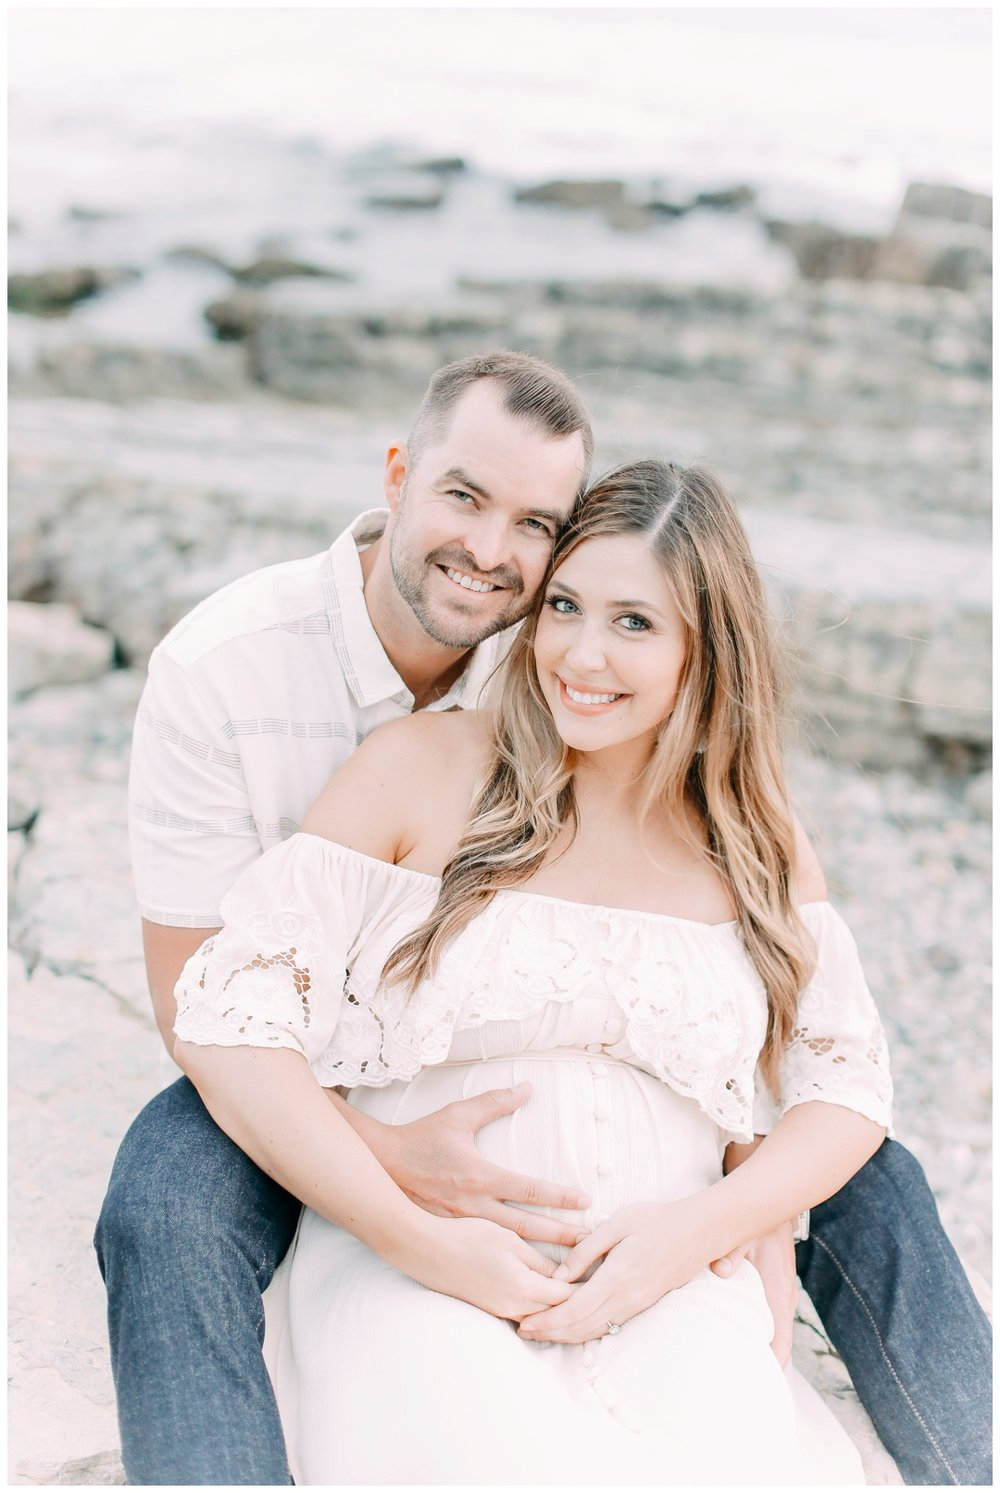 Newport_Beach_Maternity_Photographer_Beach_Maternity_Photography_Cori_Kleckner_Photography_1027.jpg